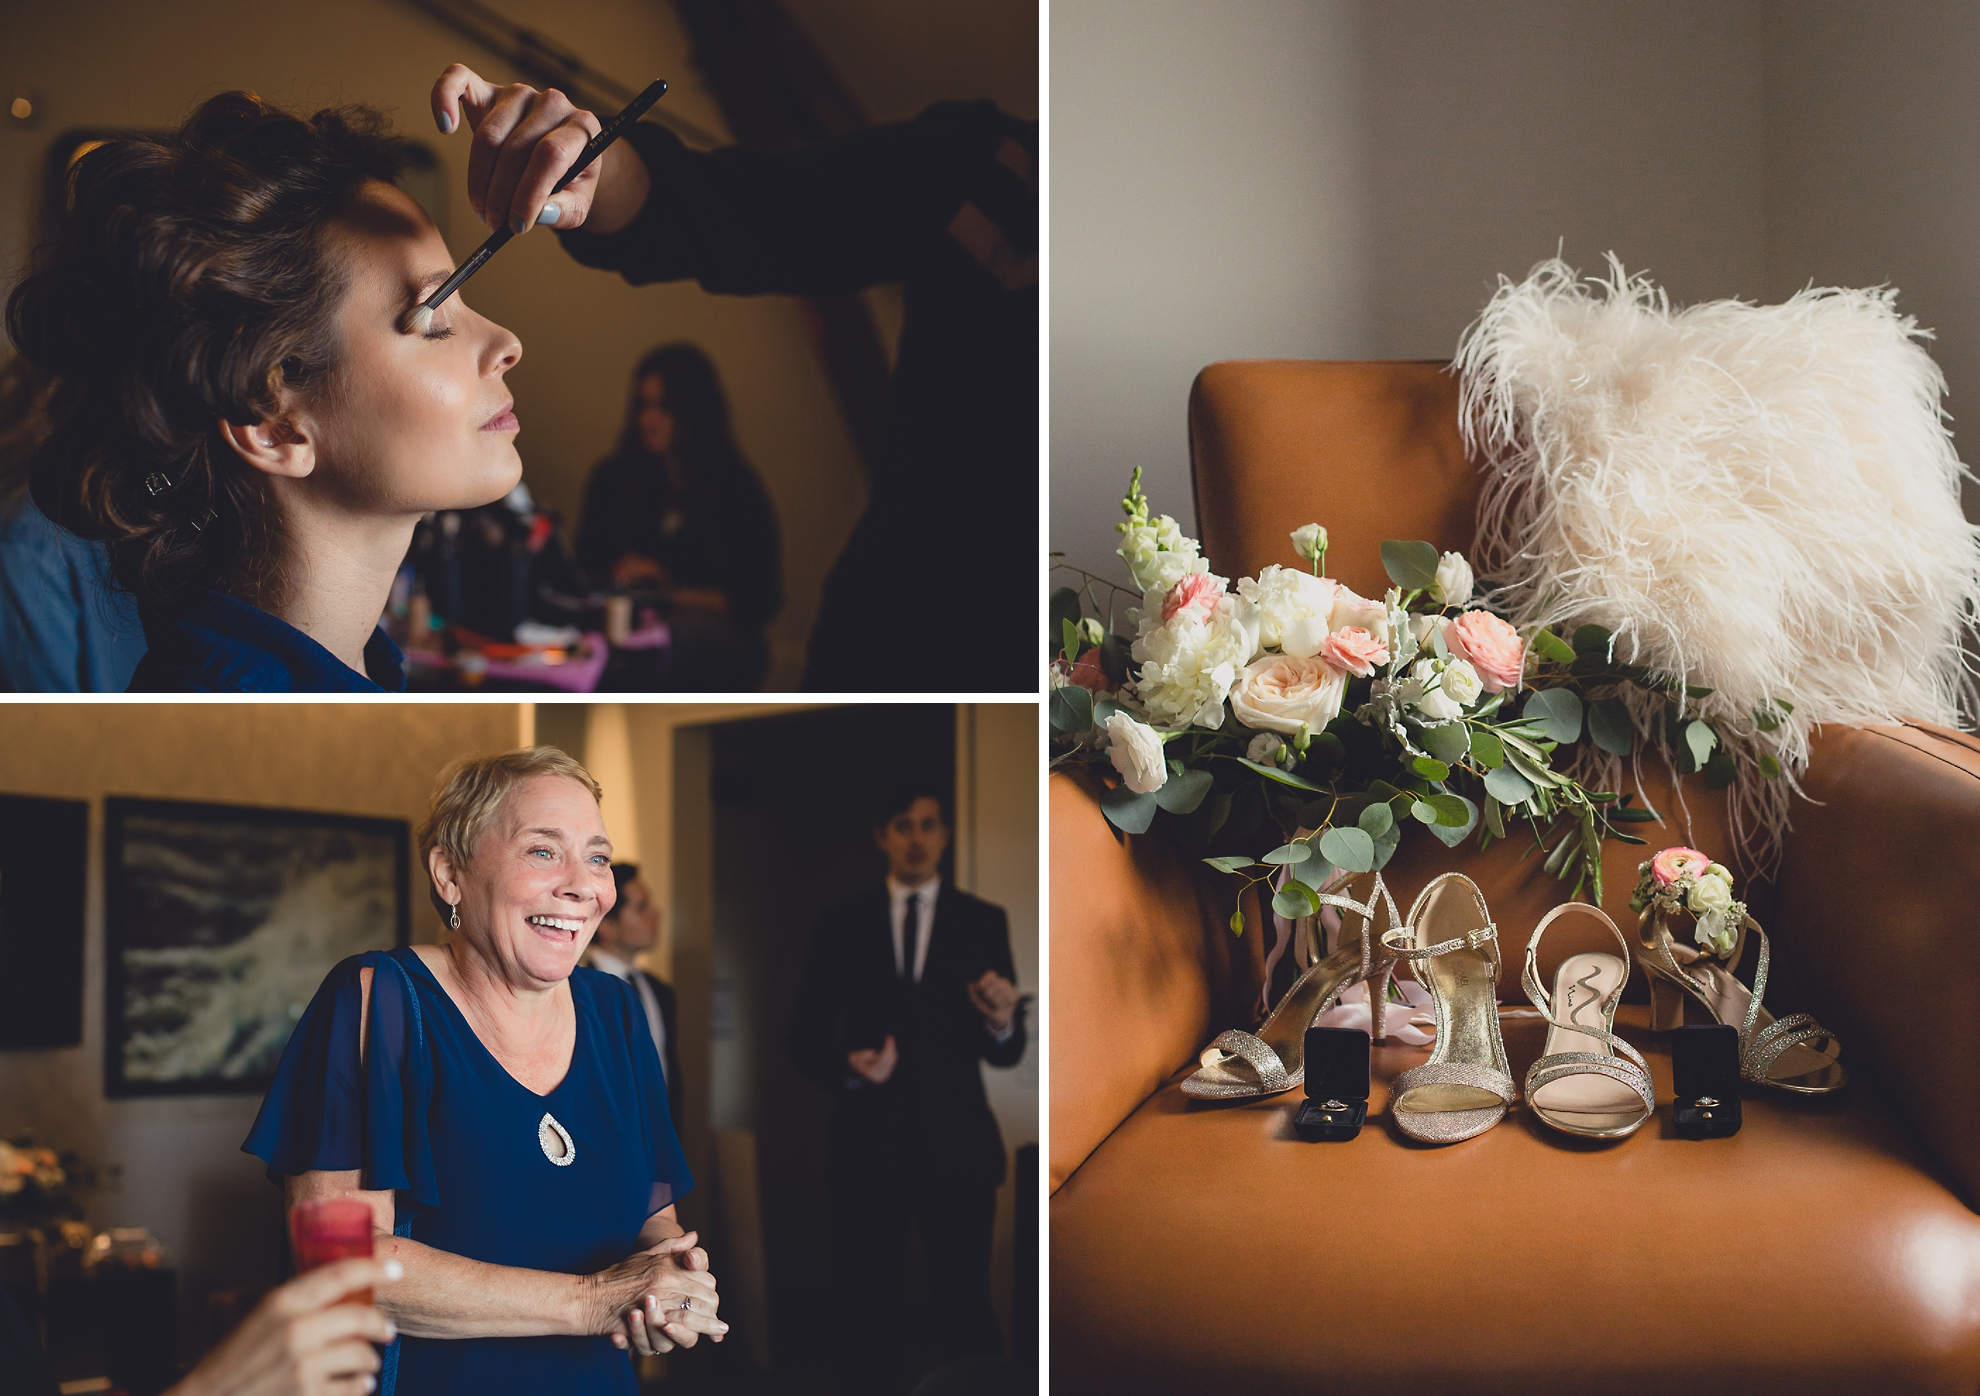 brides get ready for wedding at Hotel Henry in Buffalo, NY